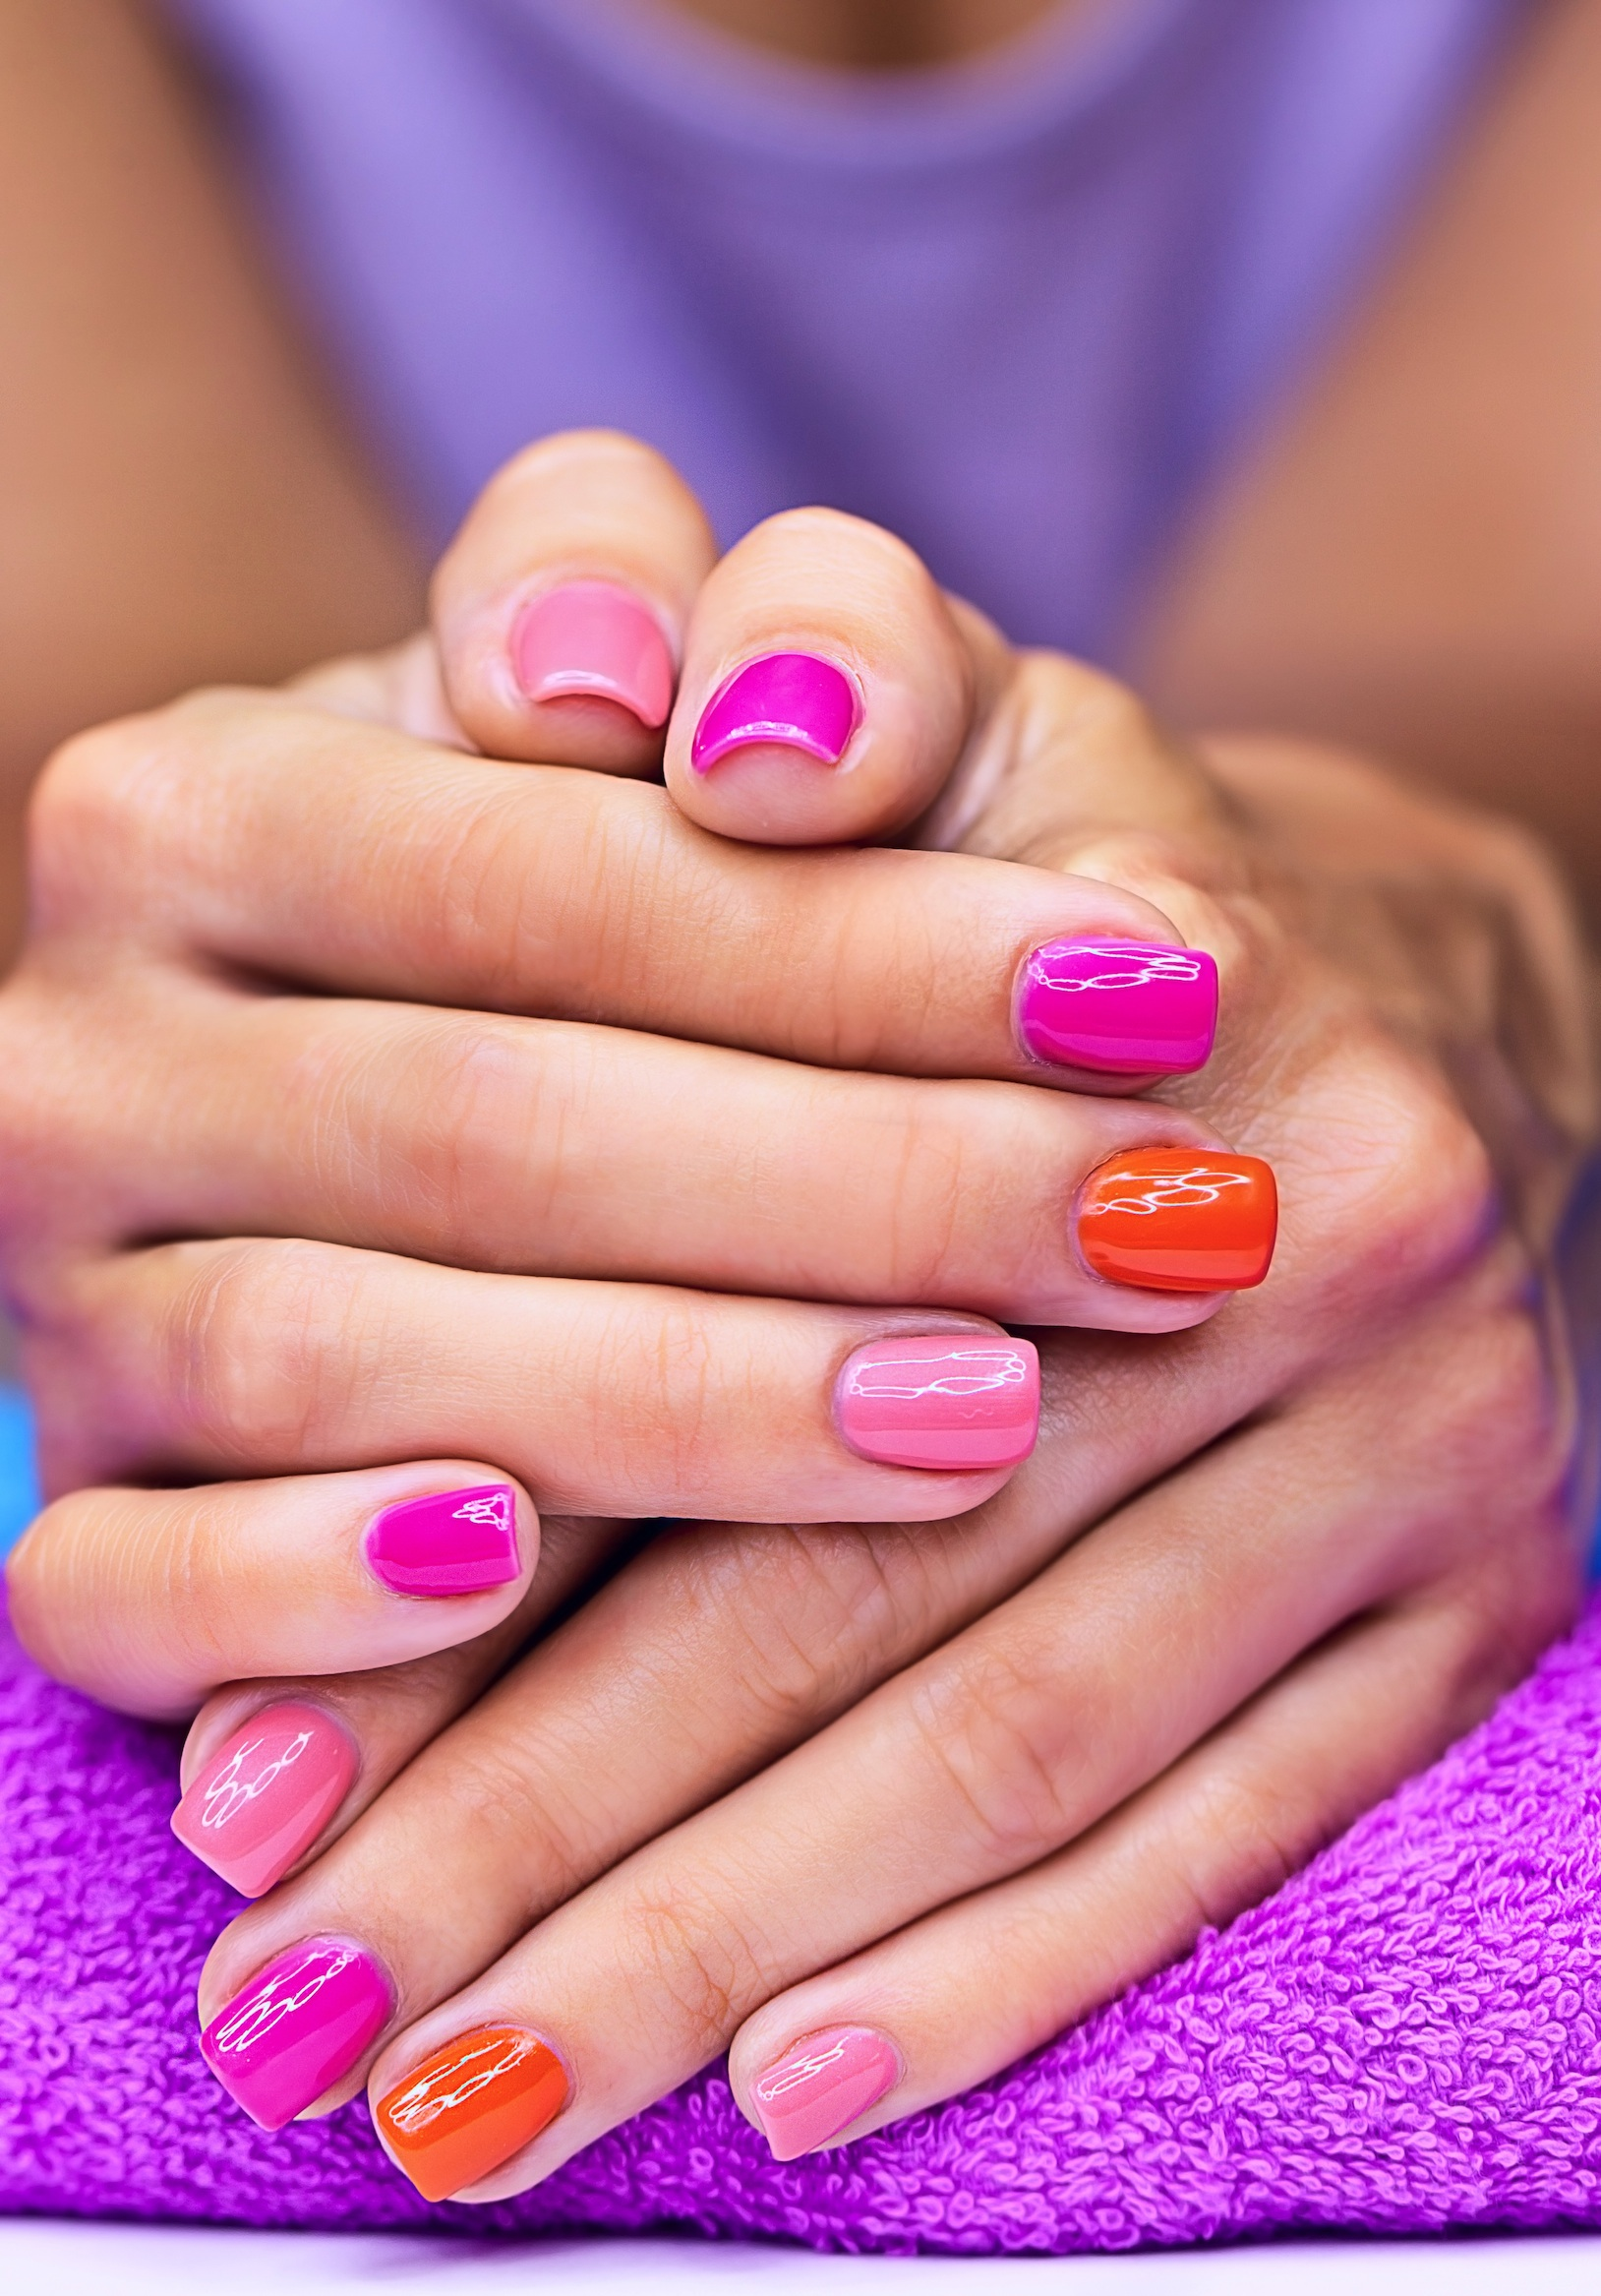 Gel Nails at Home? Three Test Drives